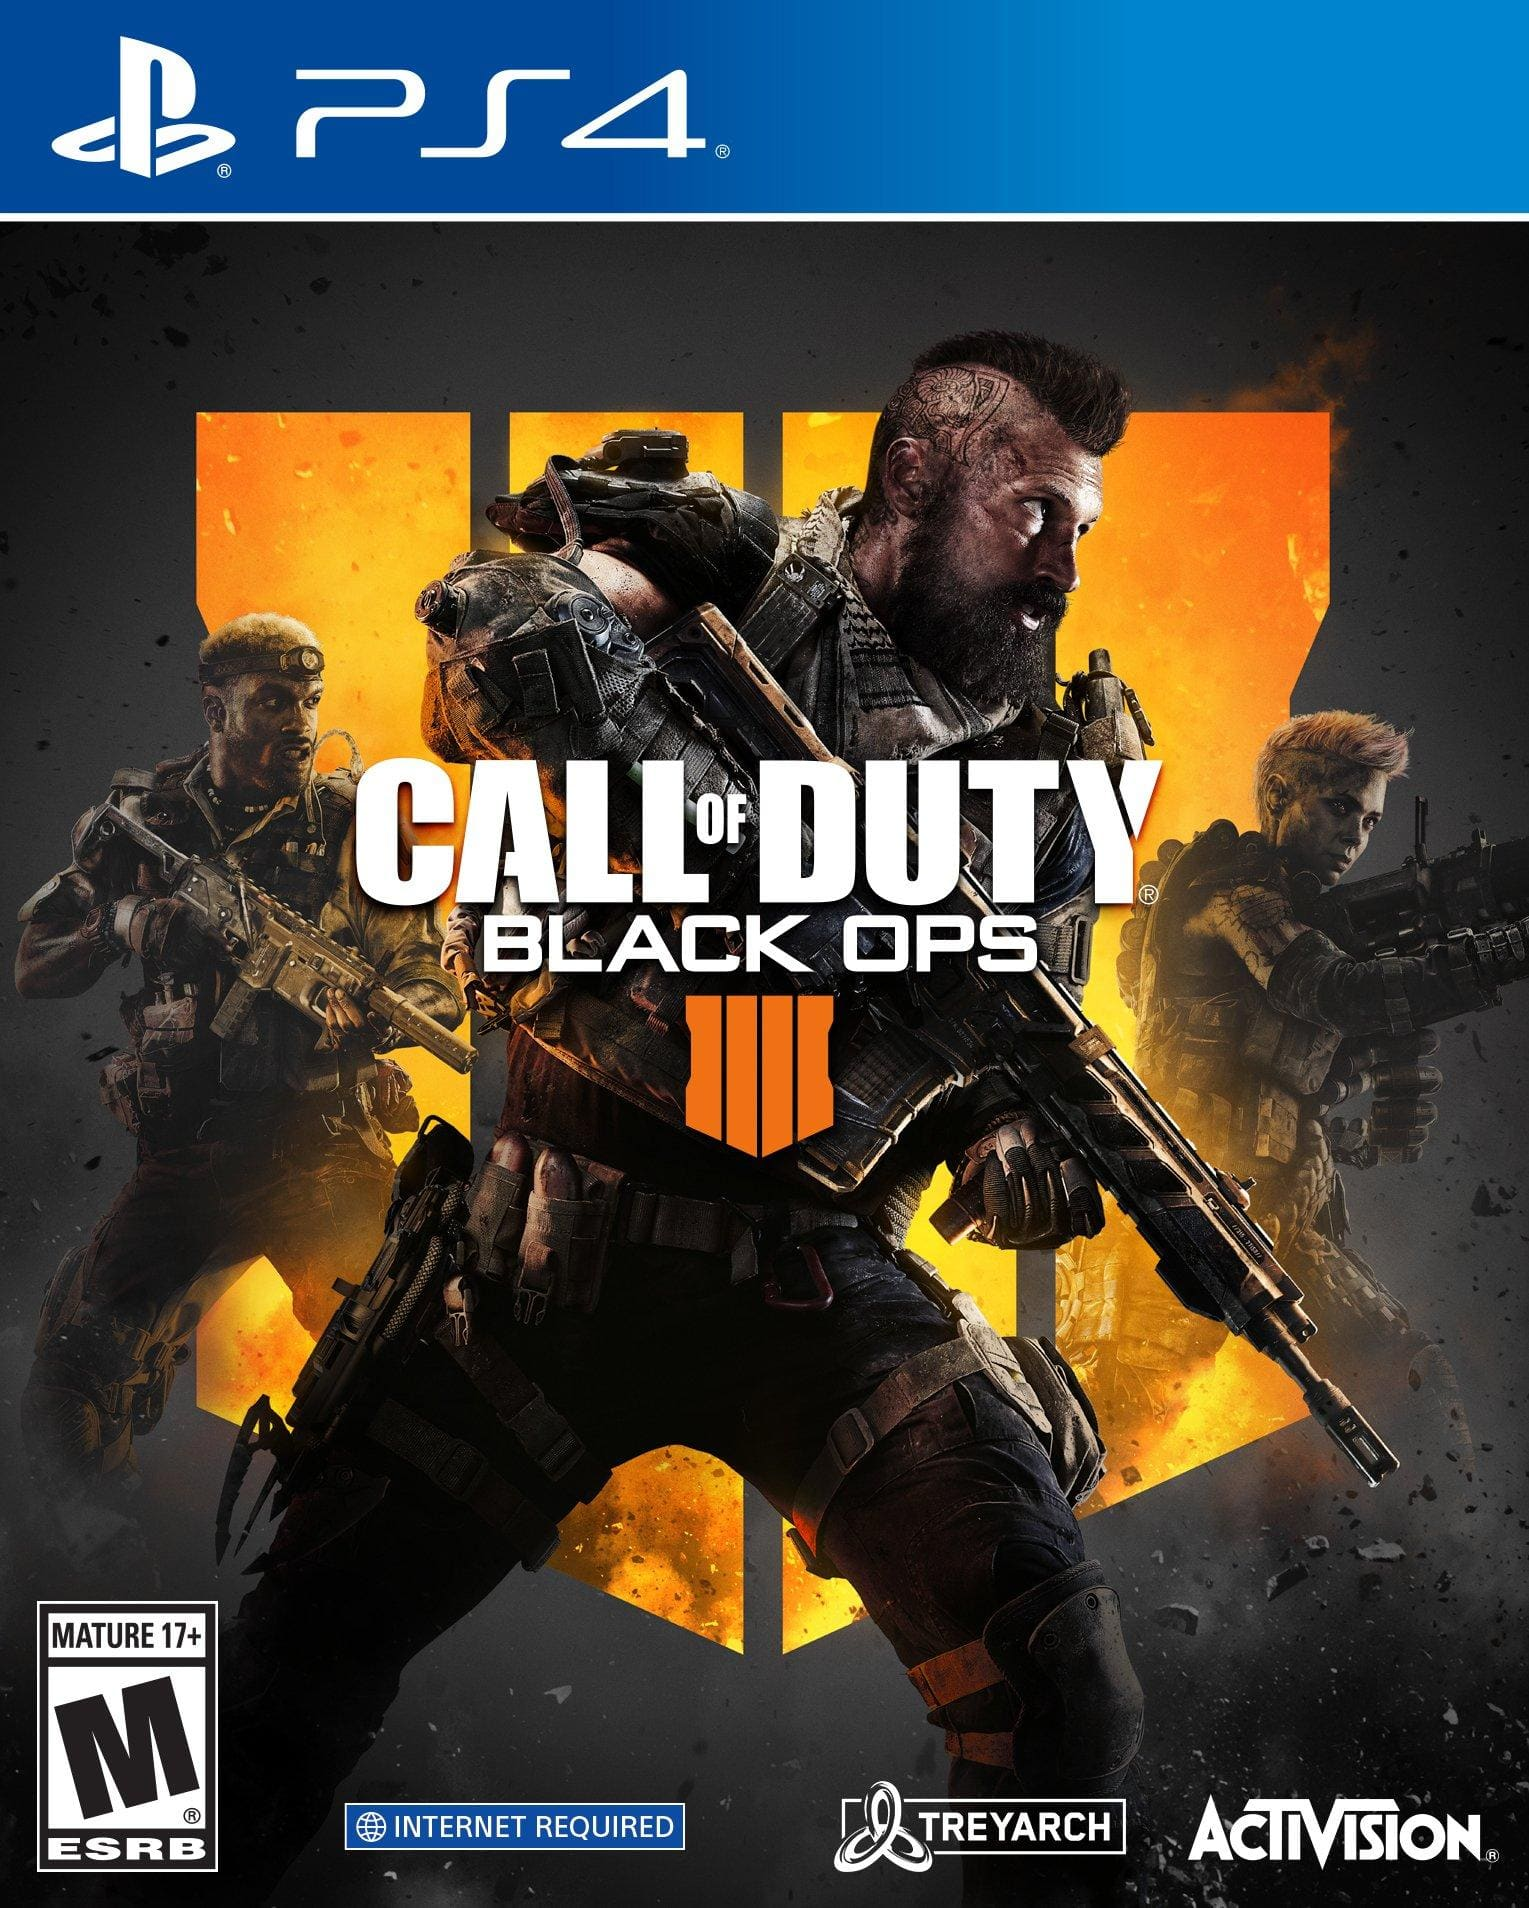 Call of Duty: Black Ops 4 $10.00 Pre-Owned at Gamestop (PS4 and Xbox One)